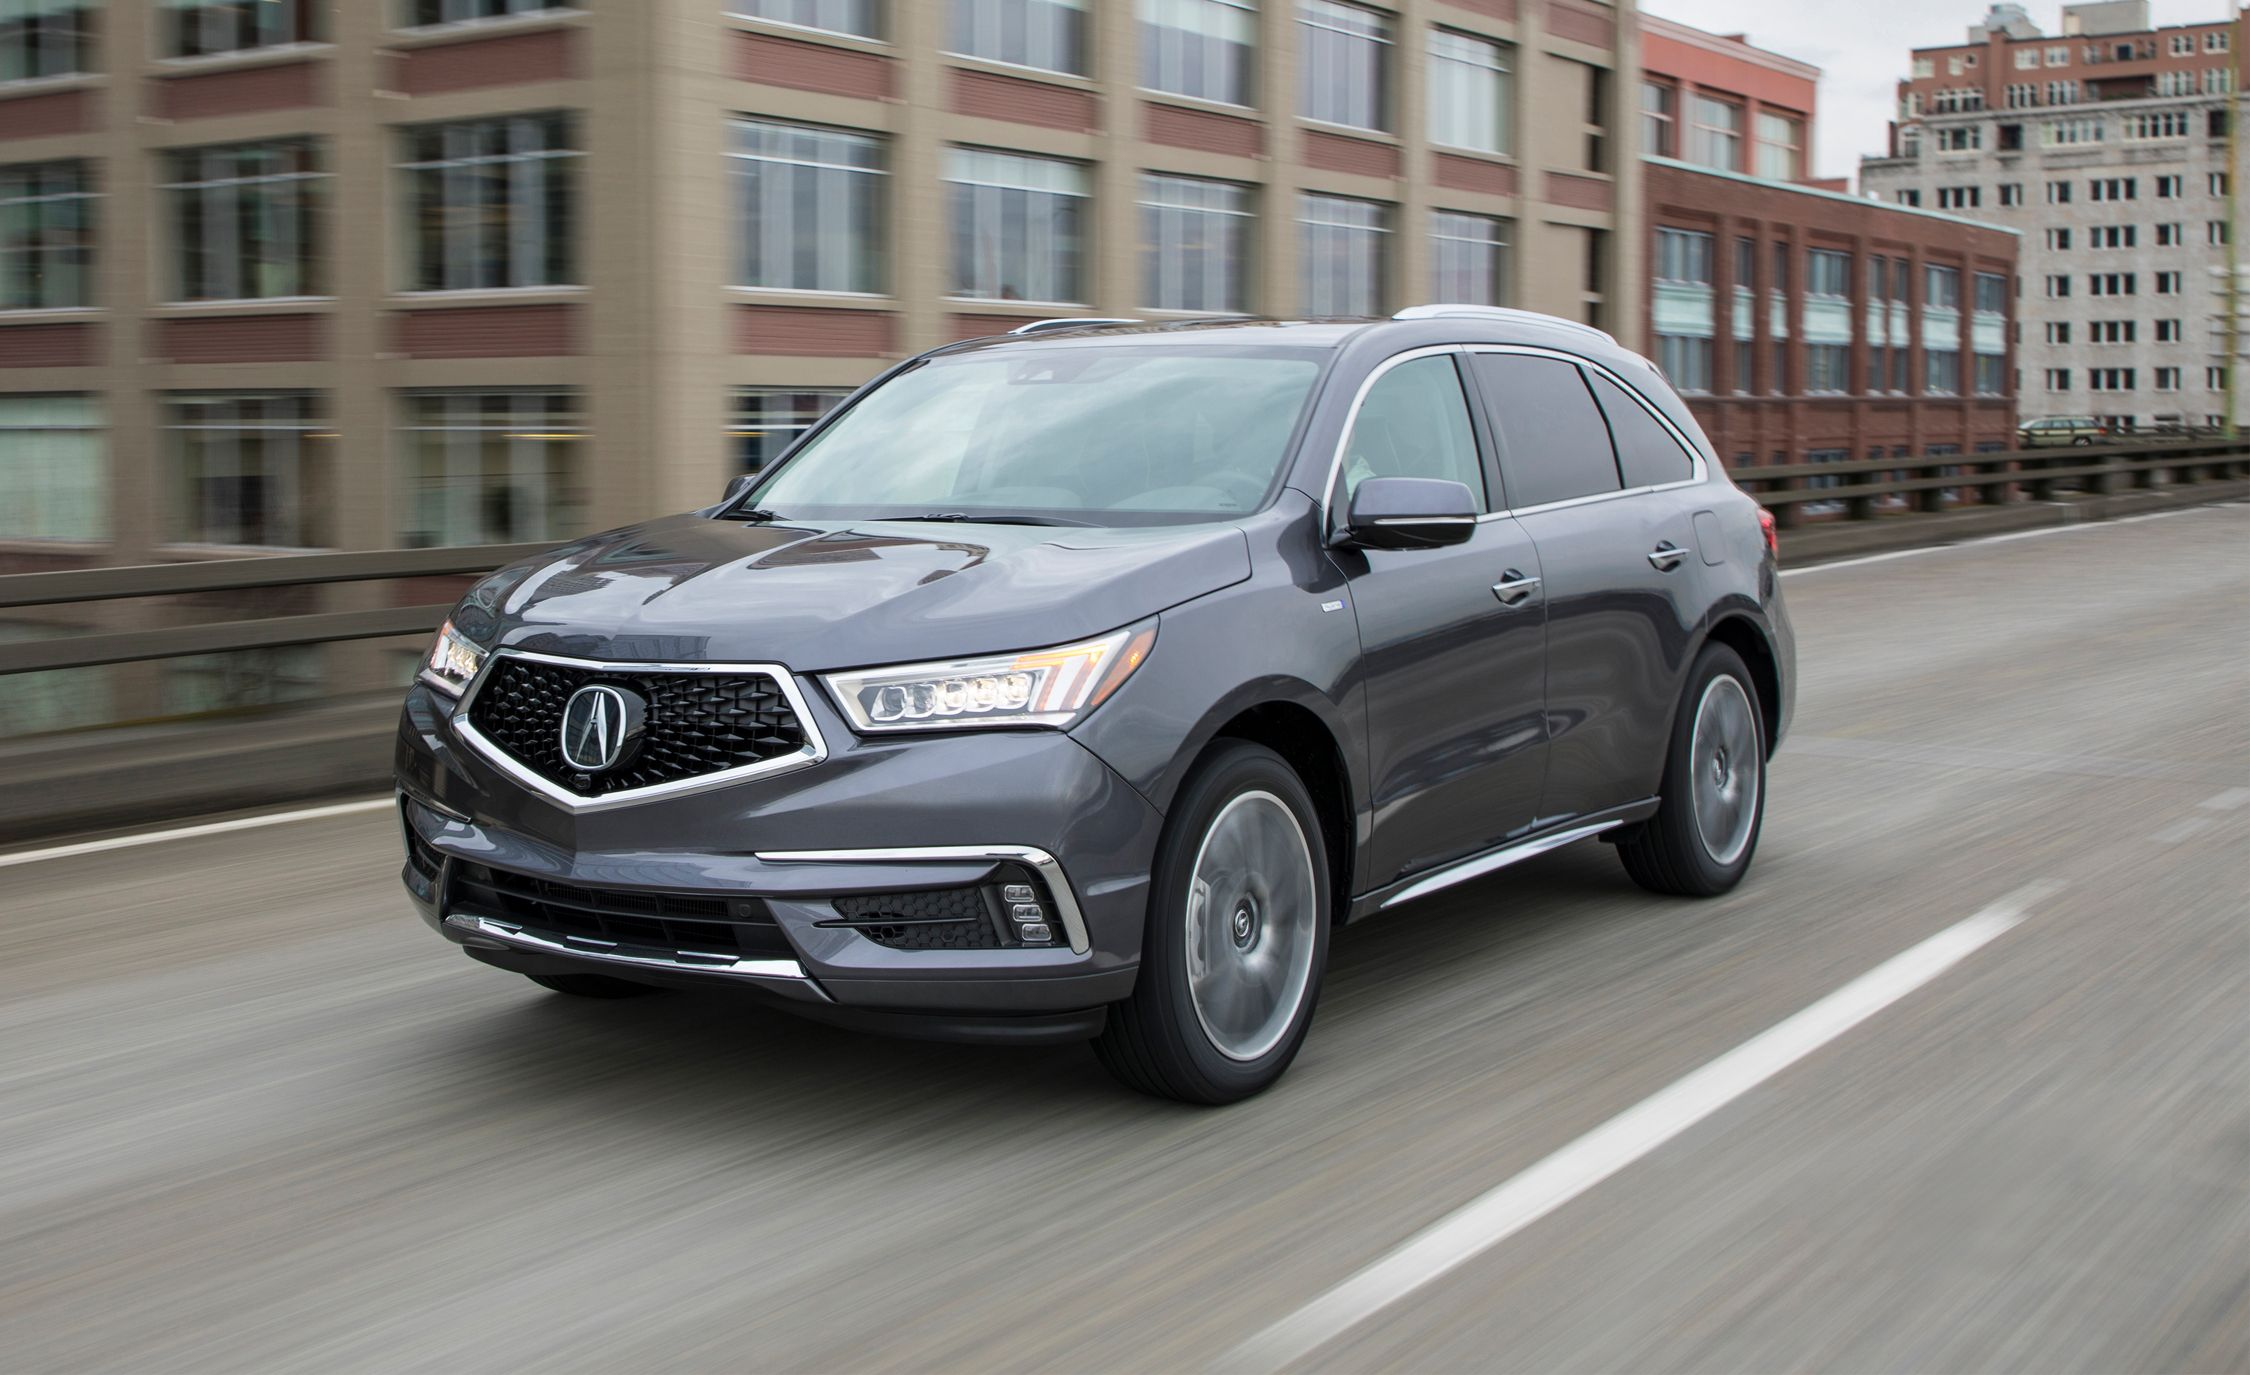 2019 Acura Mdx Reviews Price Photos And Specs Car Driver